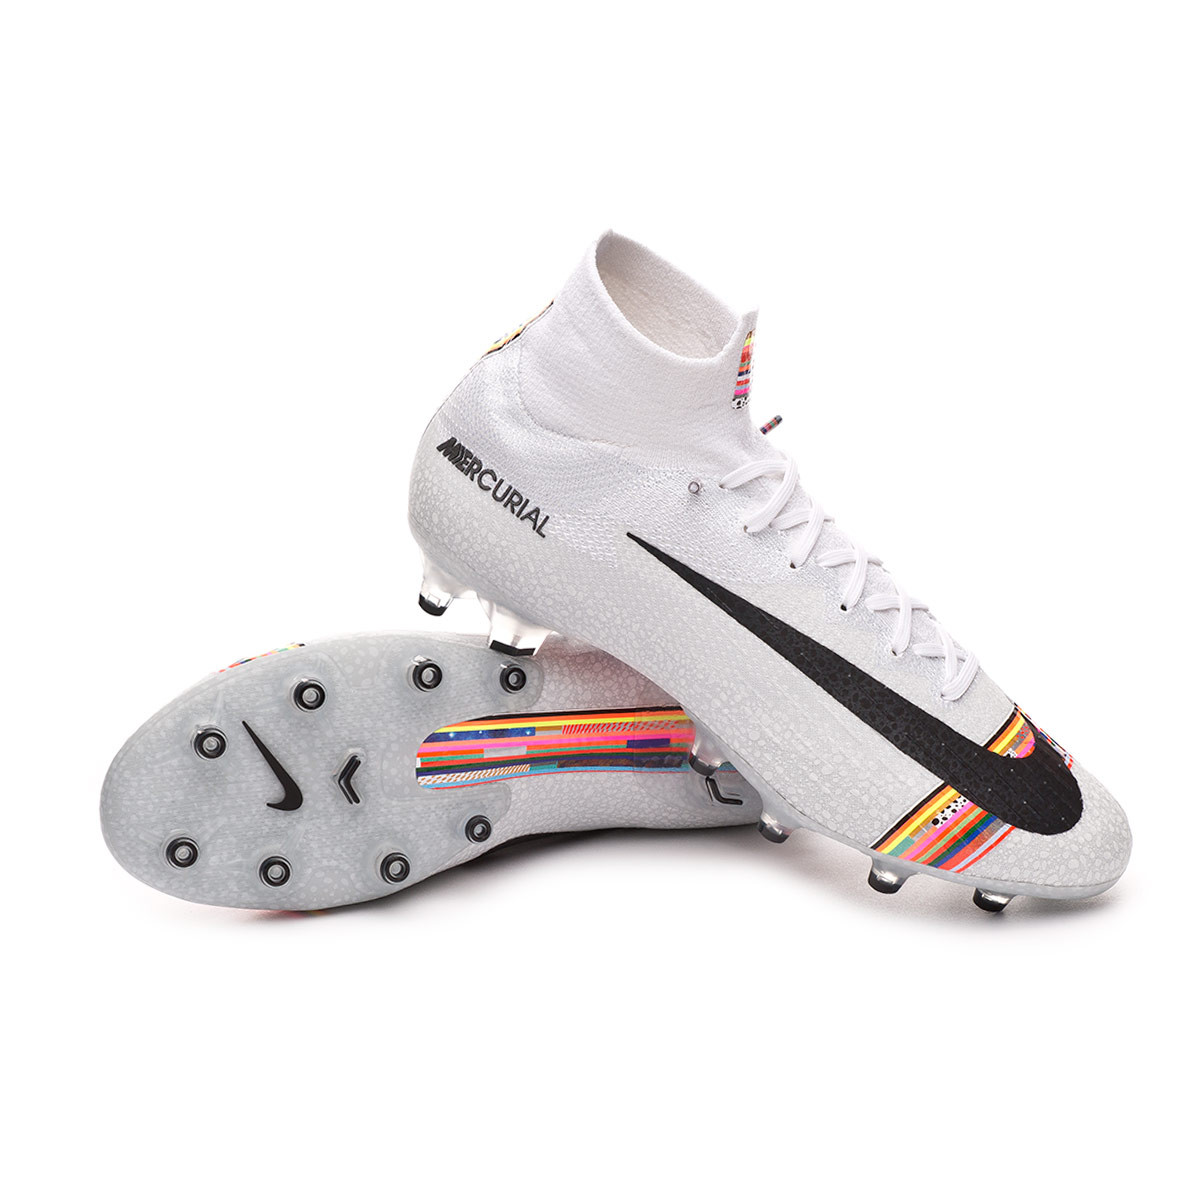 c3f2529530f94 Zapatos de fútbol Nike Mercurial Superfly VI Elite LVL UP AG-Pro  White-Black-Pure platinum - Tienda de fútbol Fútbol Emotion